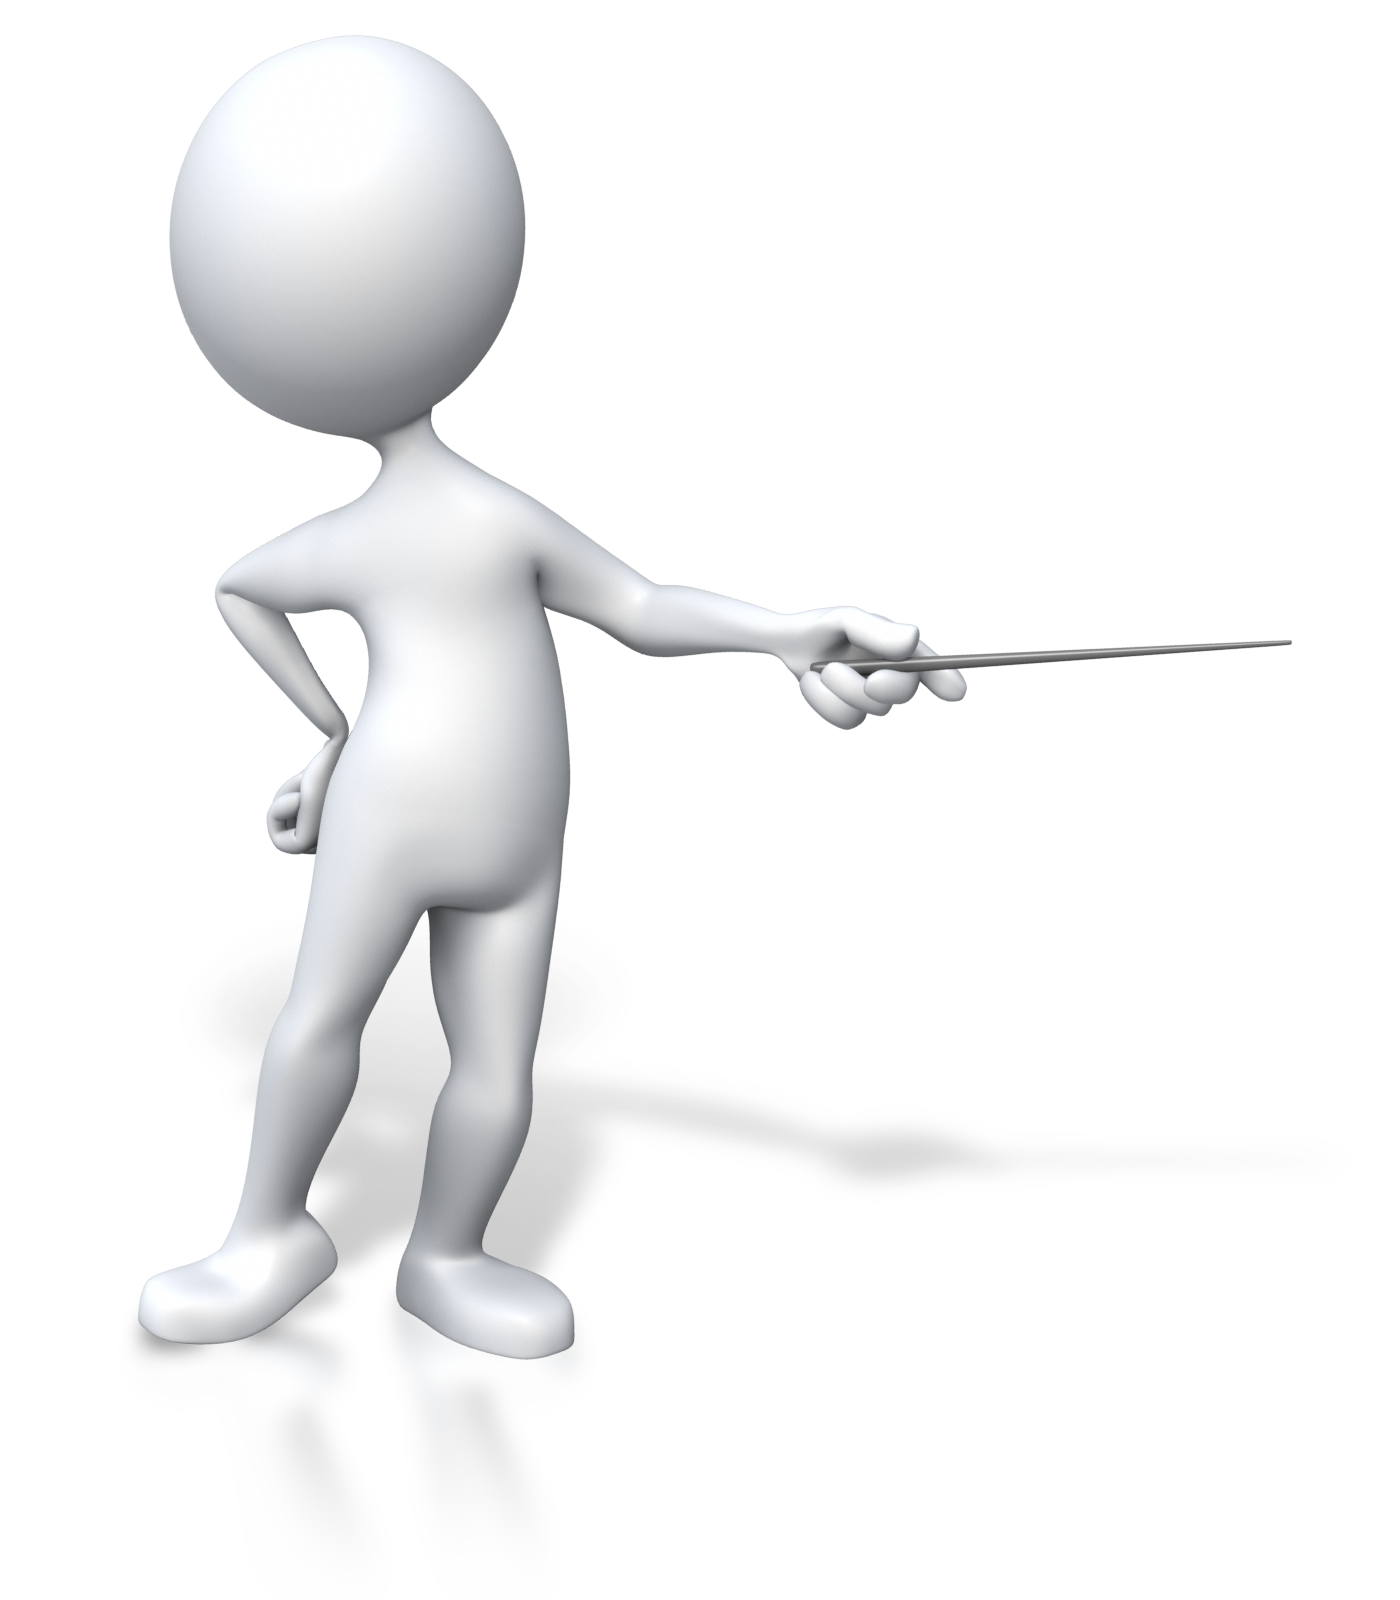 Teacher pointing stick png. Helicopter parent by ziyi